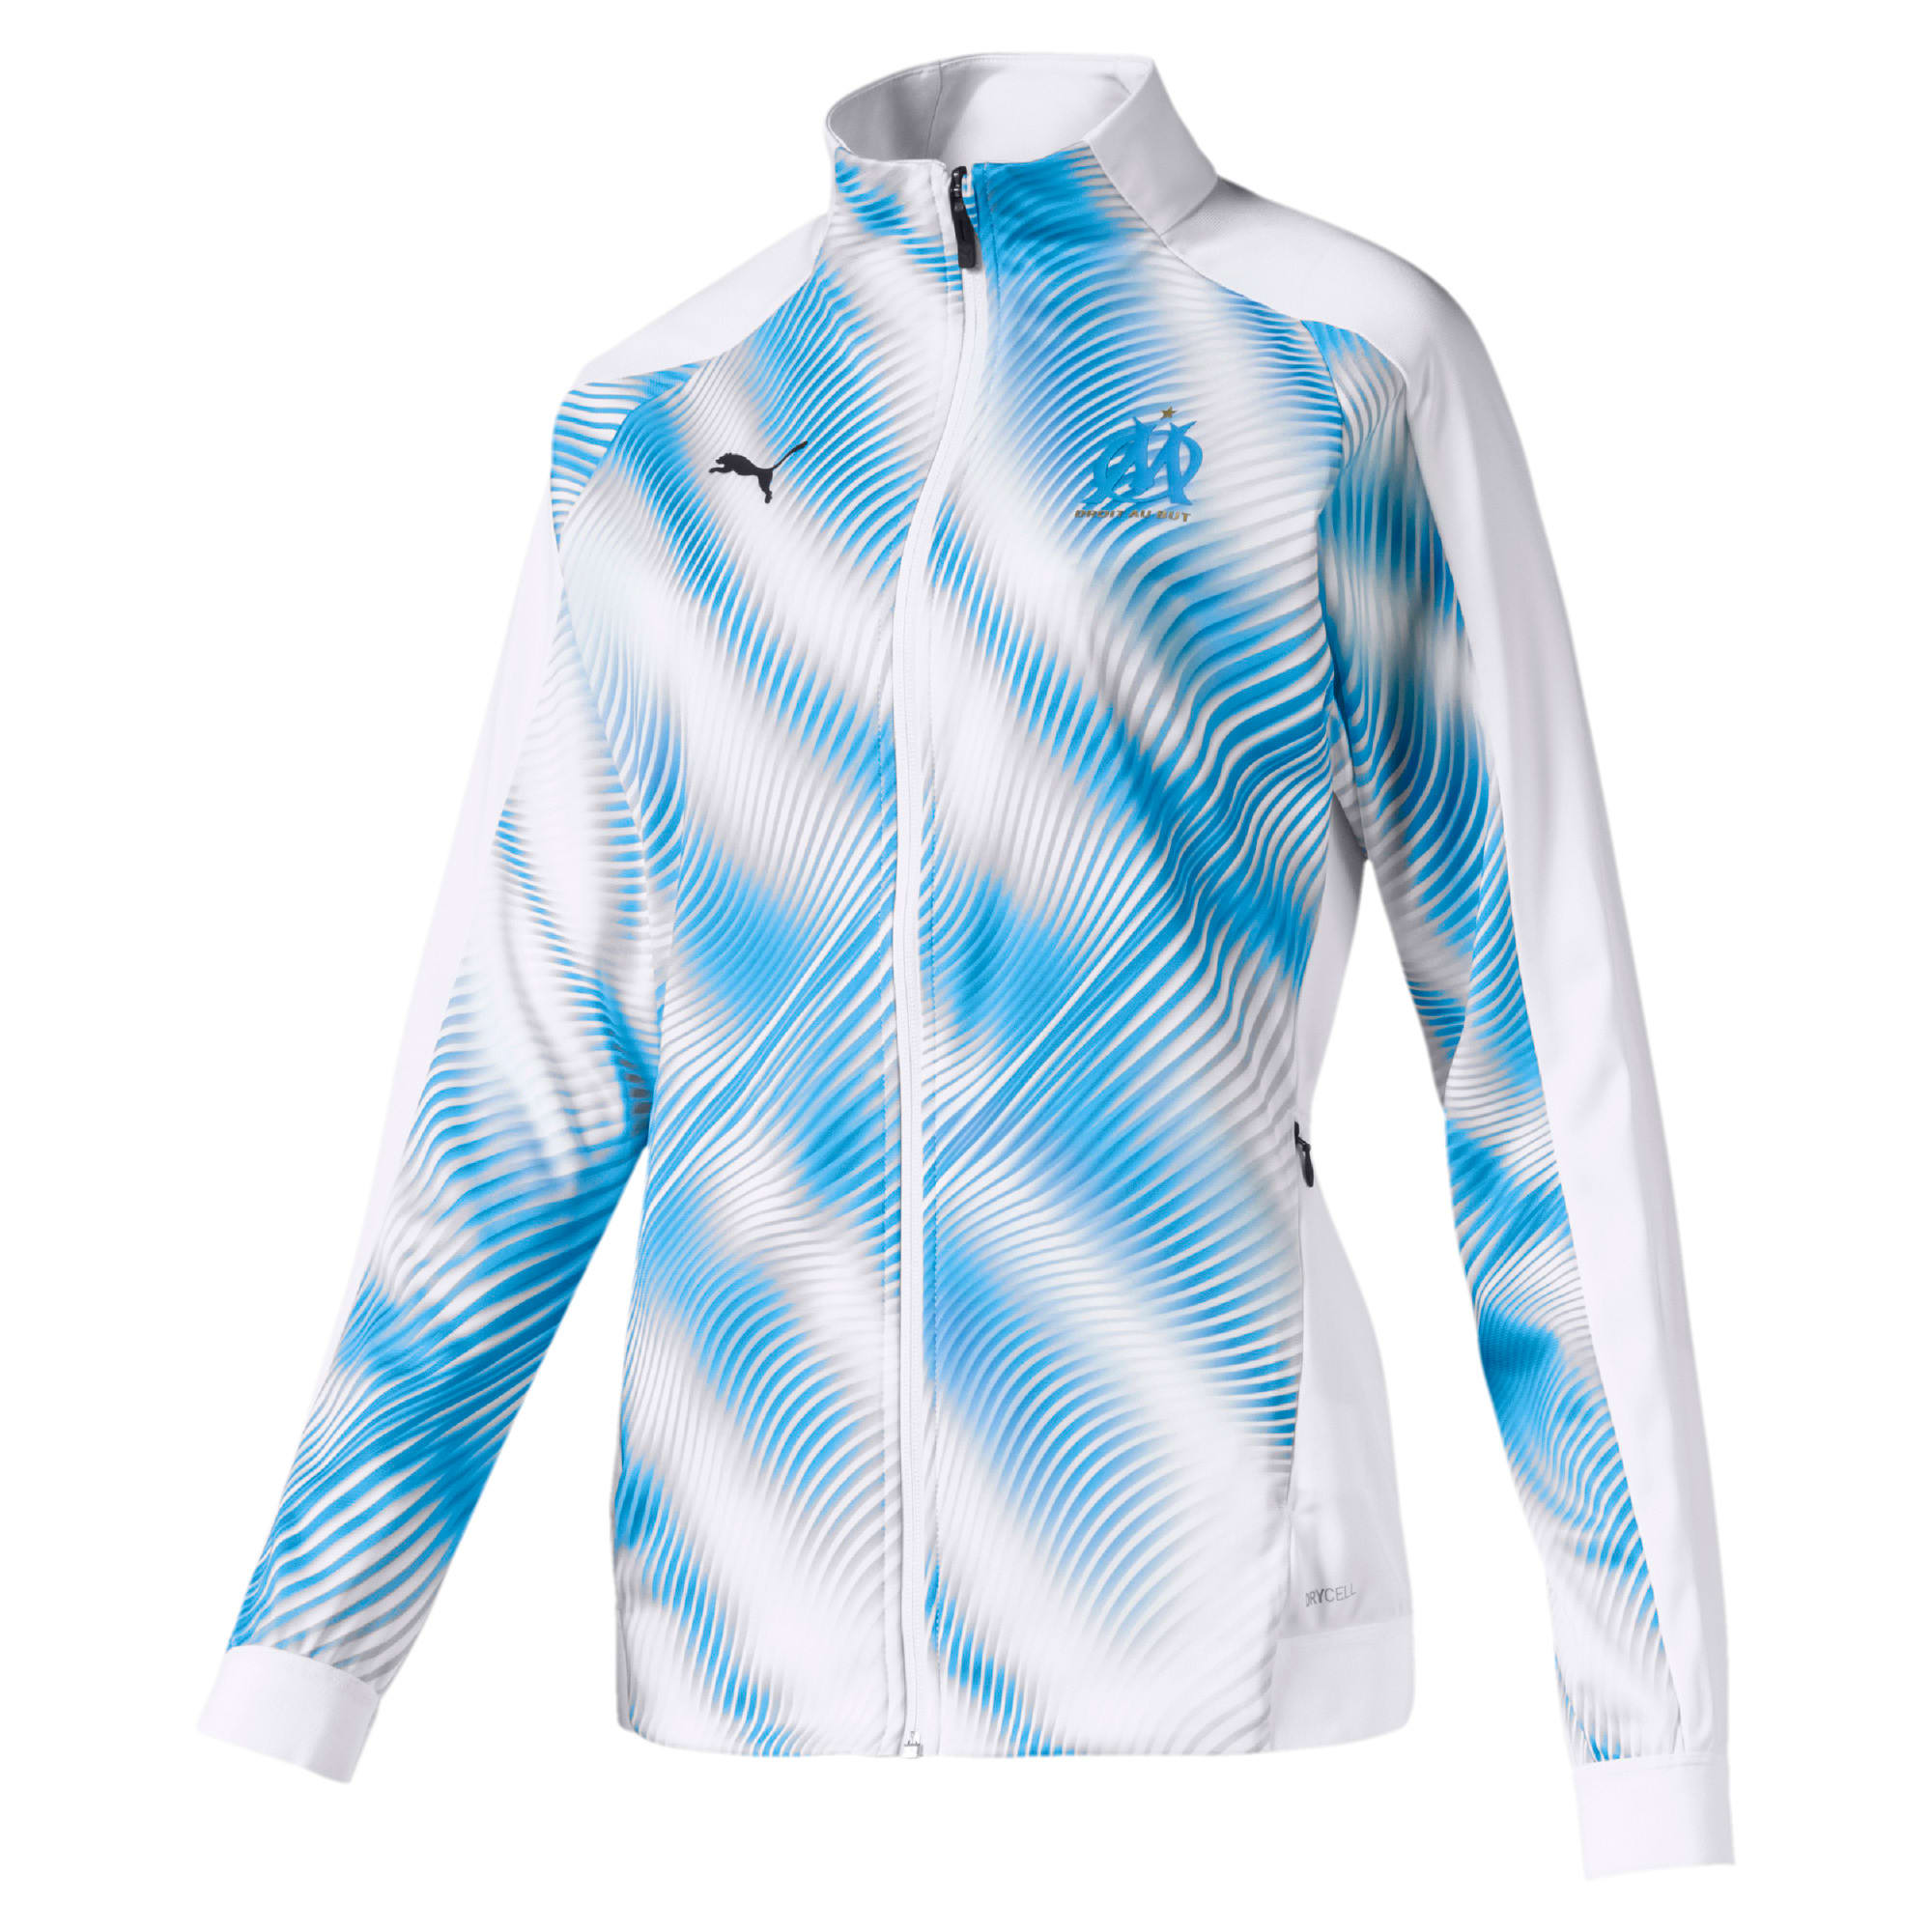 Thumbnail 1 of Olympique de Marseille Stadium Women's Replica Jacket, Puma White-Bleu Azur, medium